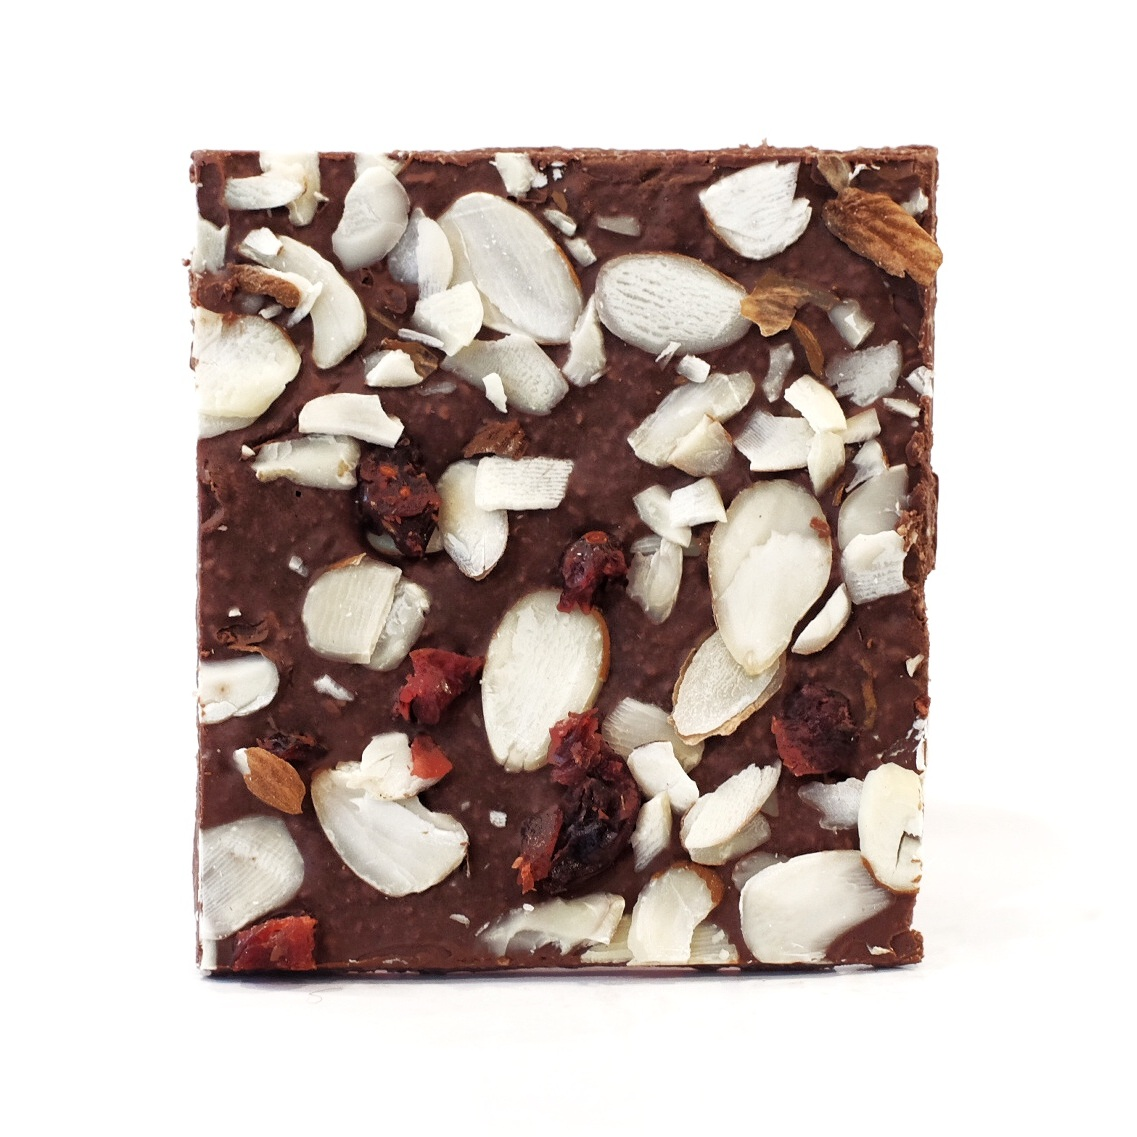 Chocolate Bark   Ingredients: Chocolate, Coconut Powder, Coconut Oil, Almonds, Cranberry, Cocoa Powder